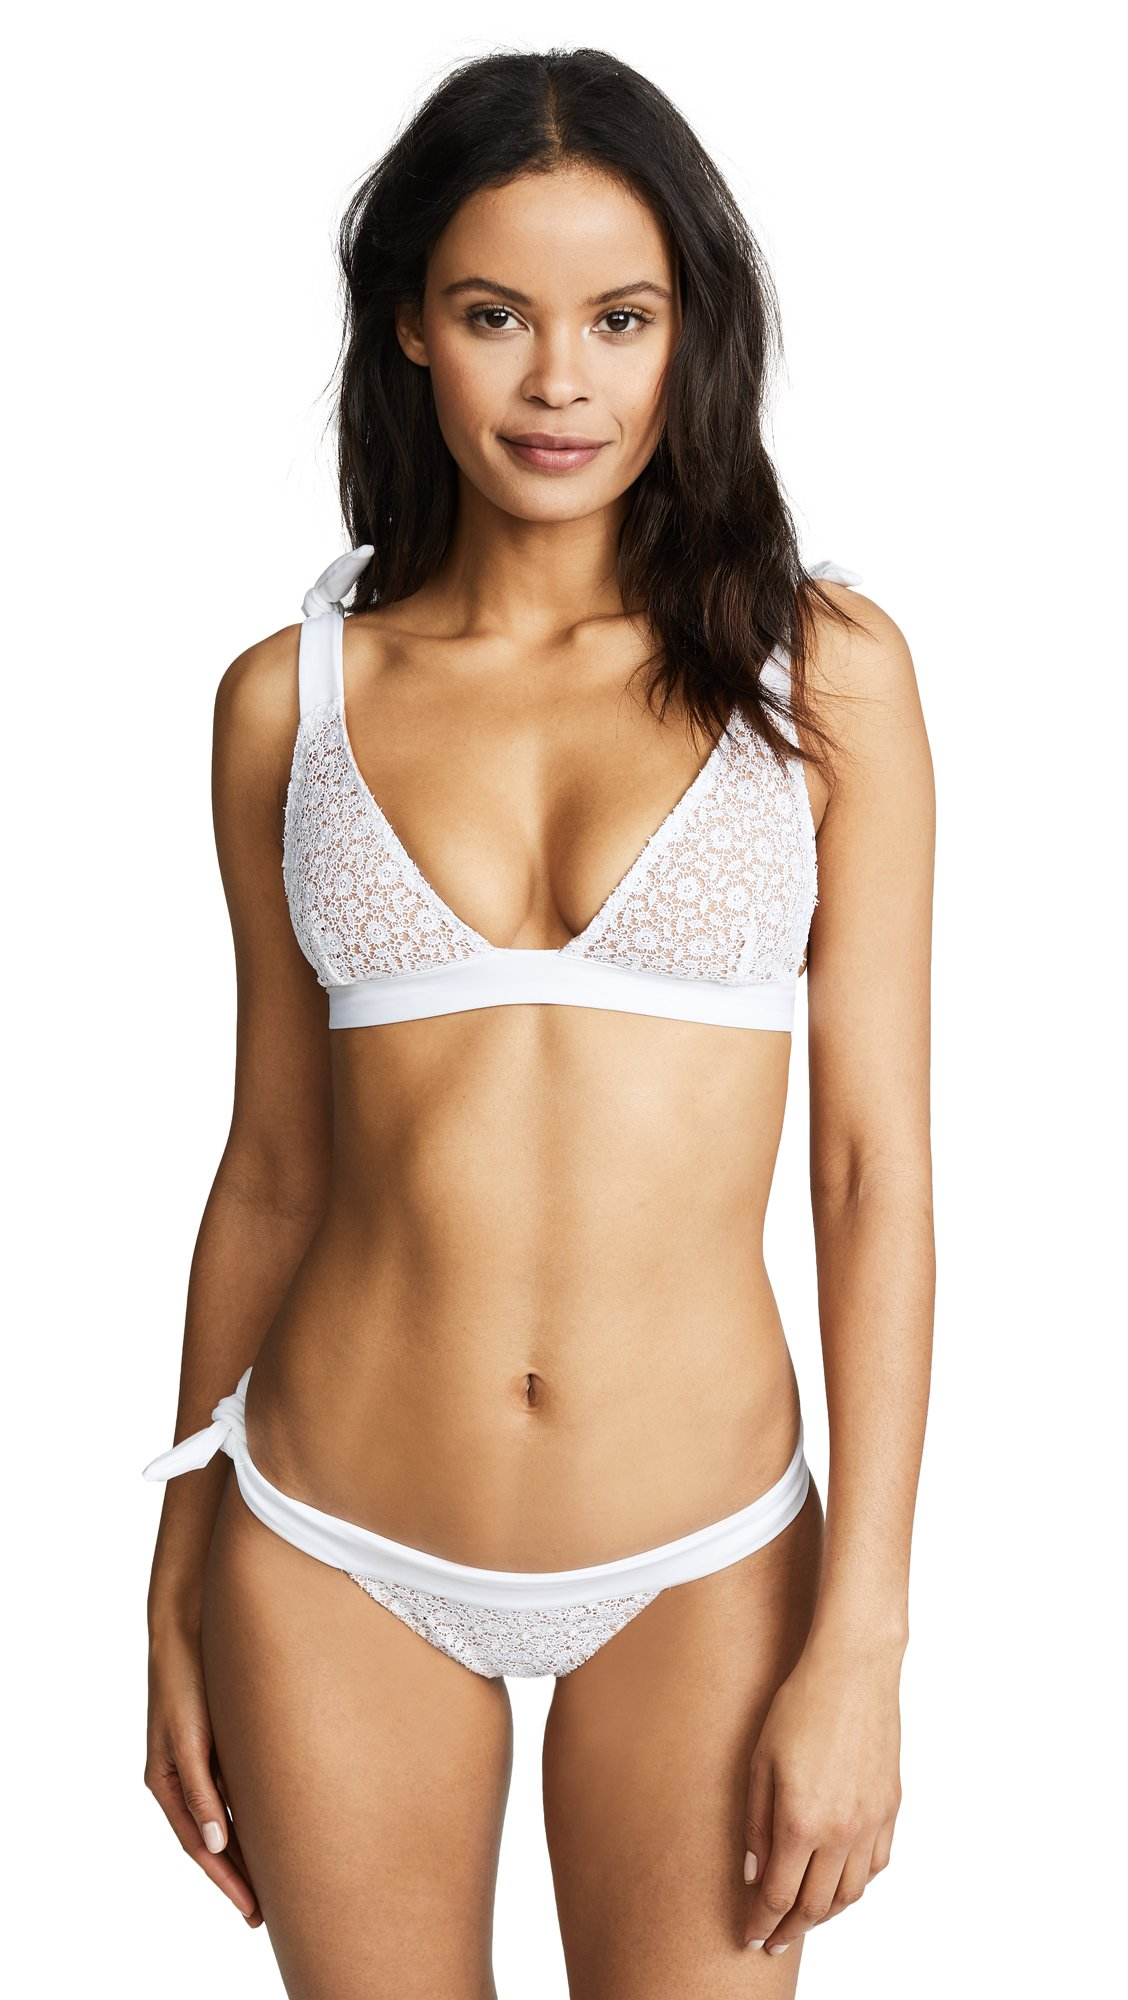 For Love & Lemons Women's Daquiri Lace Bikini Top, White Lace, X-Small